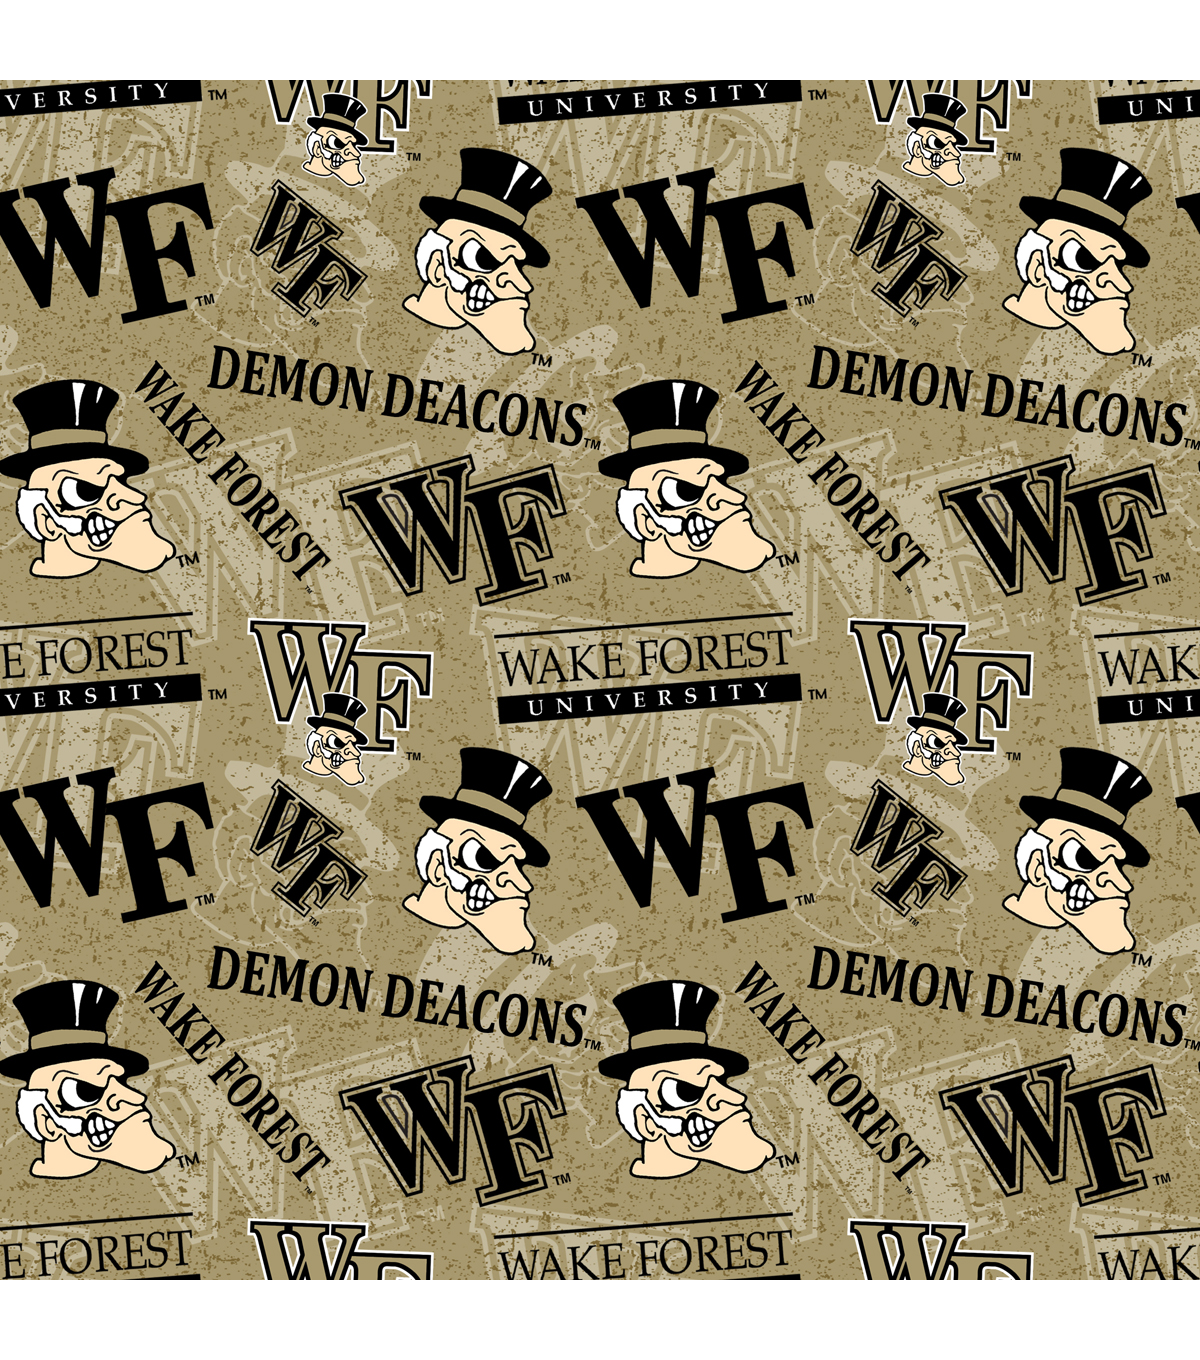 Wake Forest Demon Deacons Cotton Fabric-Tone on Tone